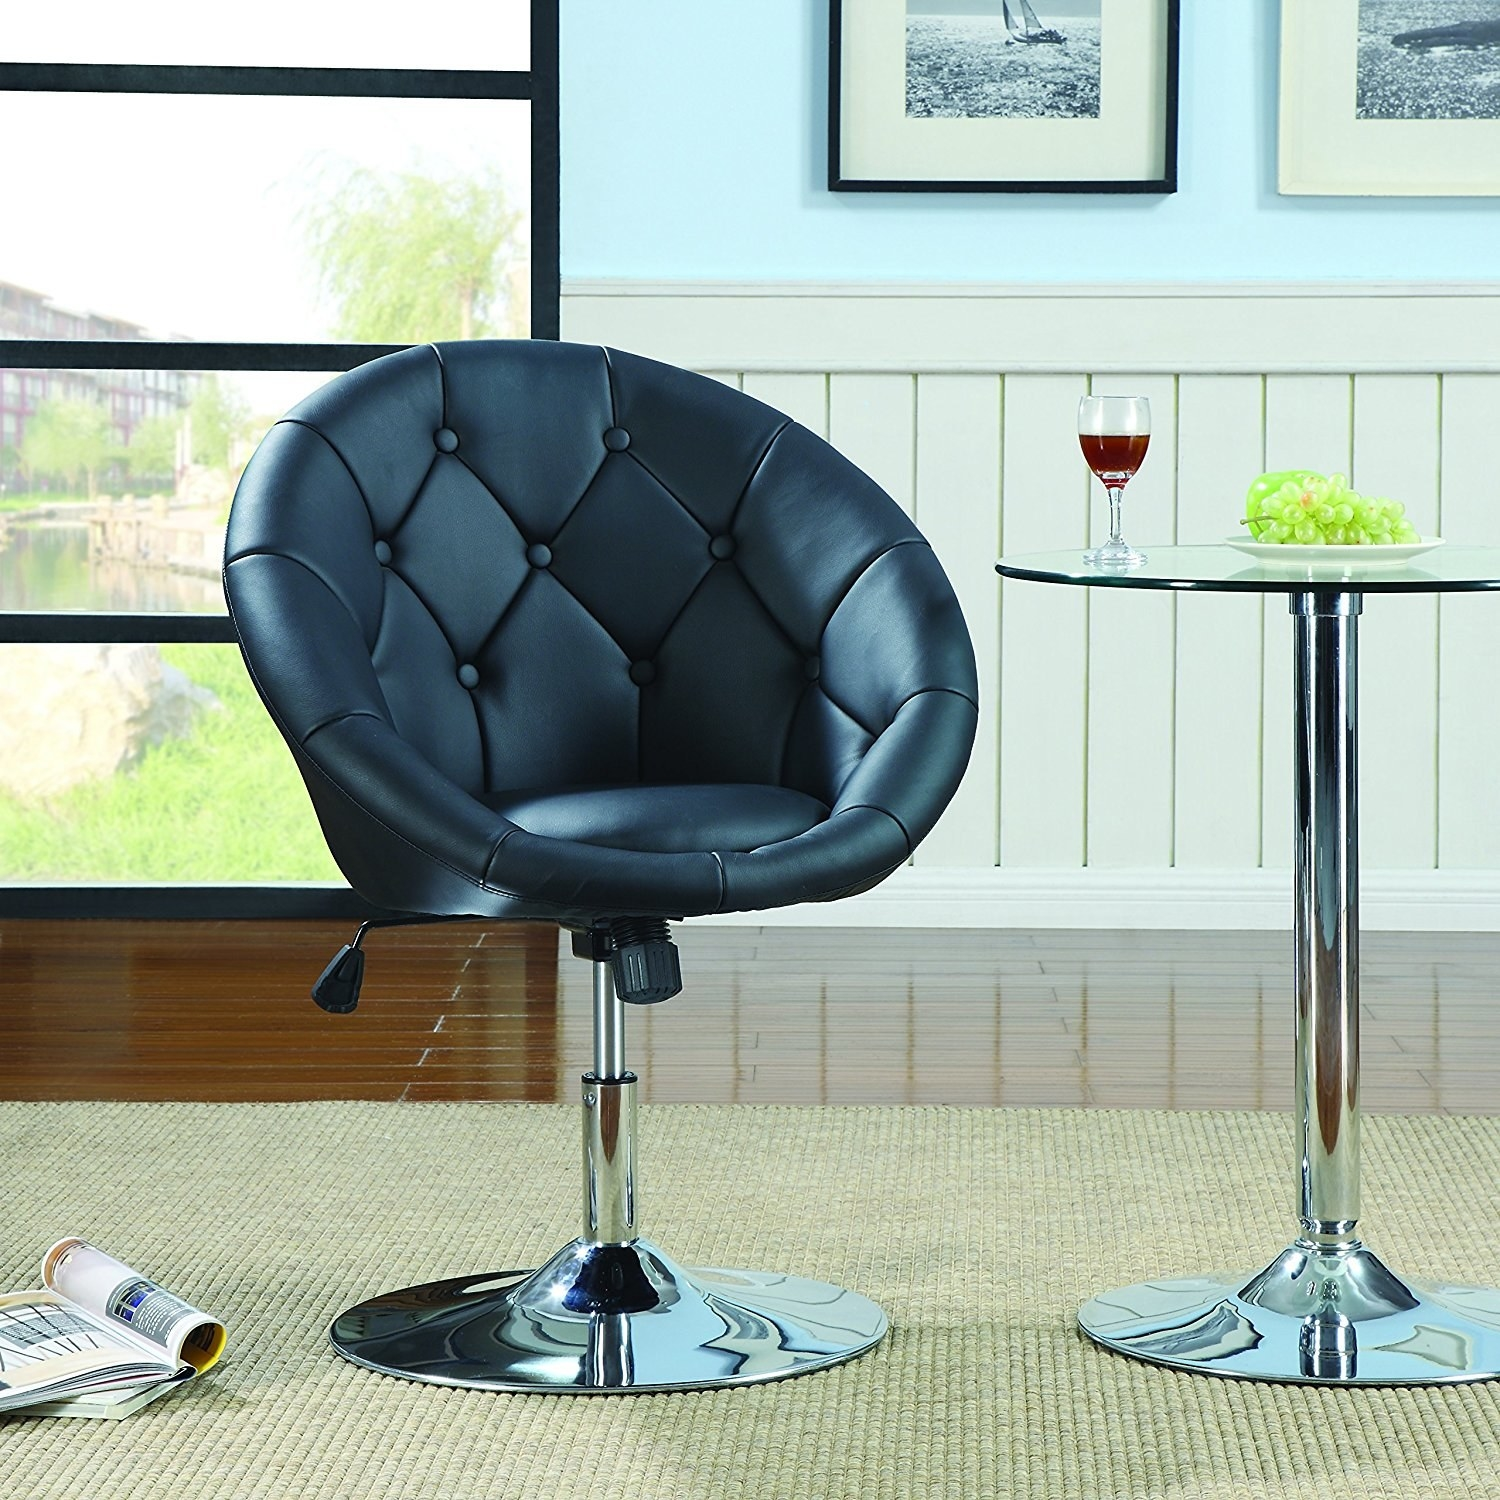 Promising Review: U0026quot;Where Do I Start? This Chair Is Super Comfy And